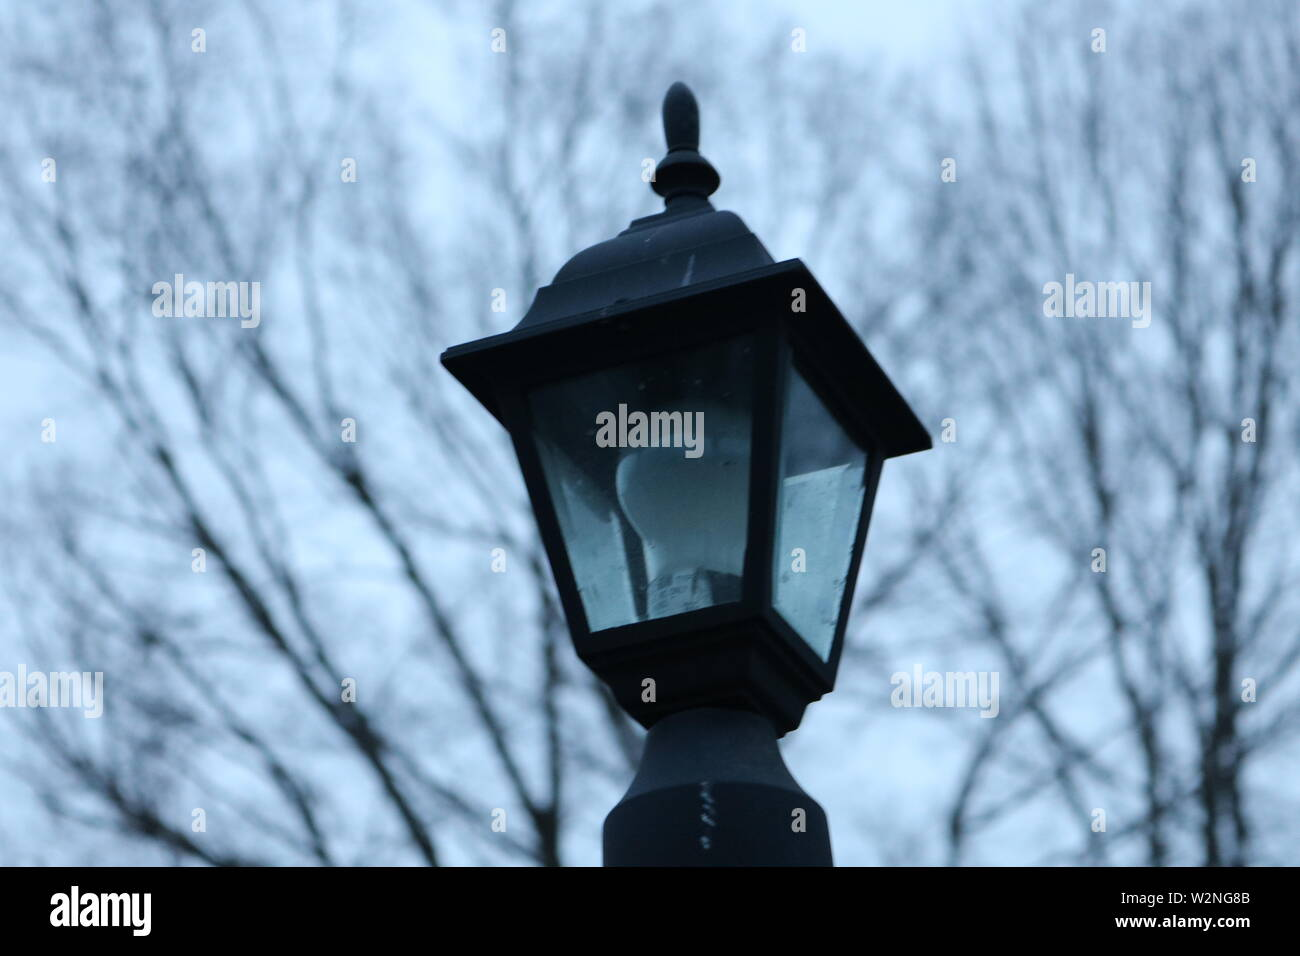 Out side lamp. Photo was taken in the early morning on a cloudy day. - Stock Image